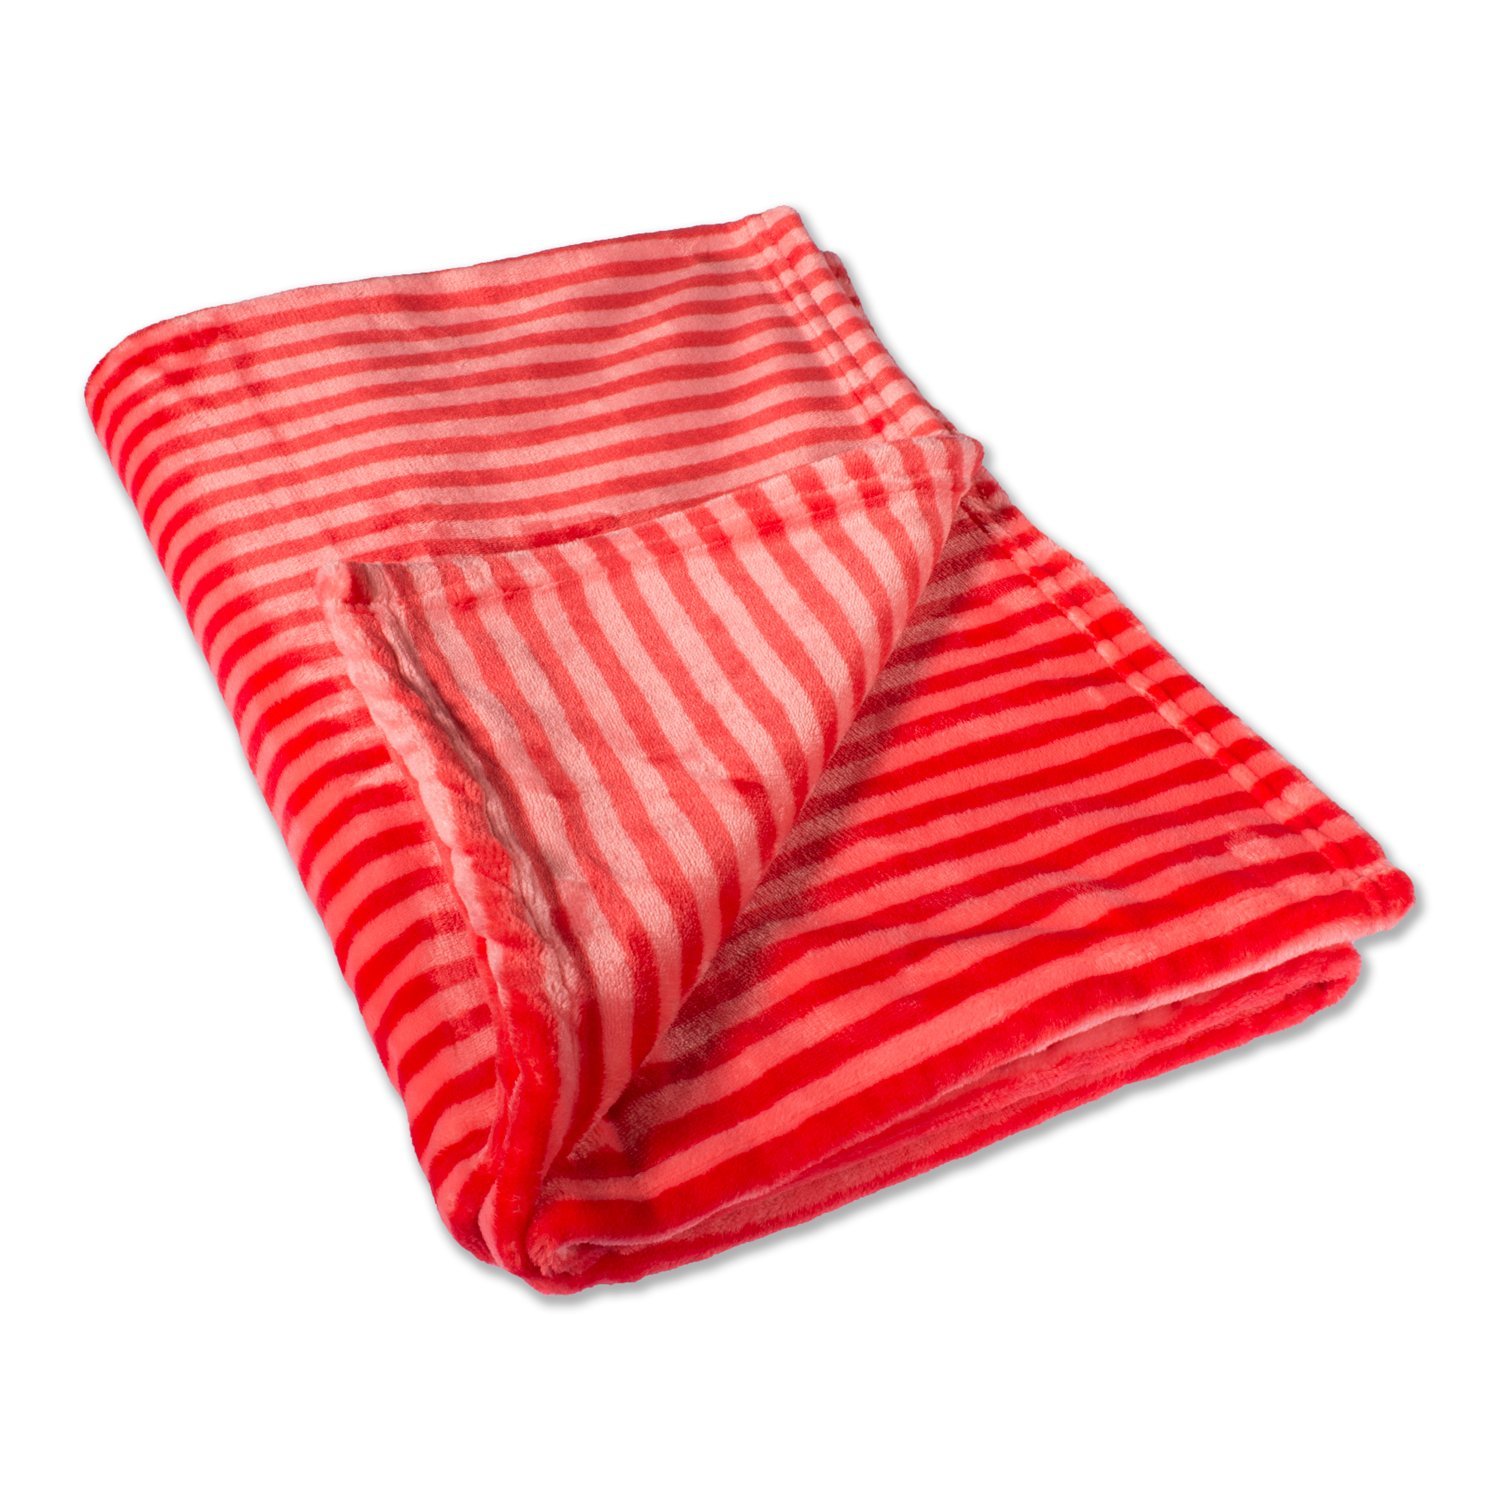 DII Super Soft Plush Flannel Fleece Stripe Blanket Throw for Chair, Couch, Picnic, Camping, Beach, Everyday Use, 36 x 48 - Red by DII